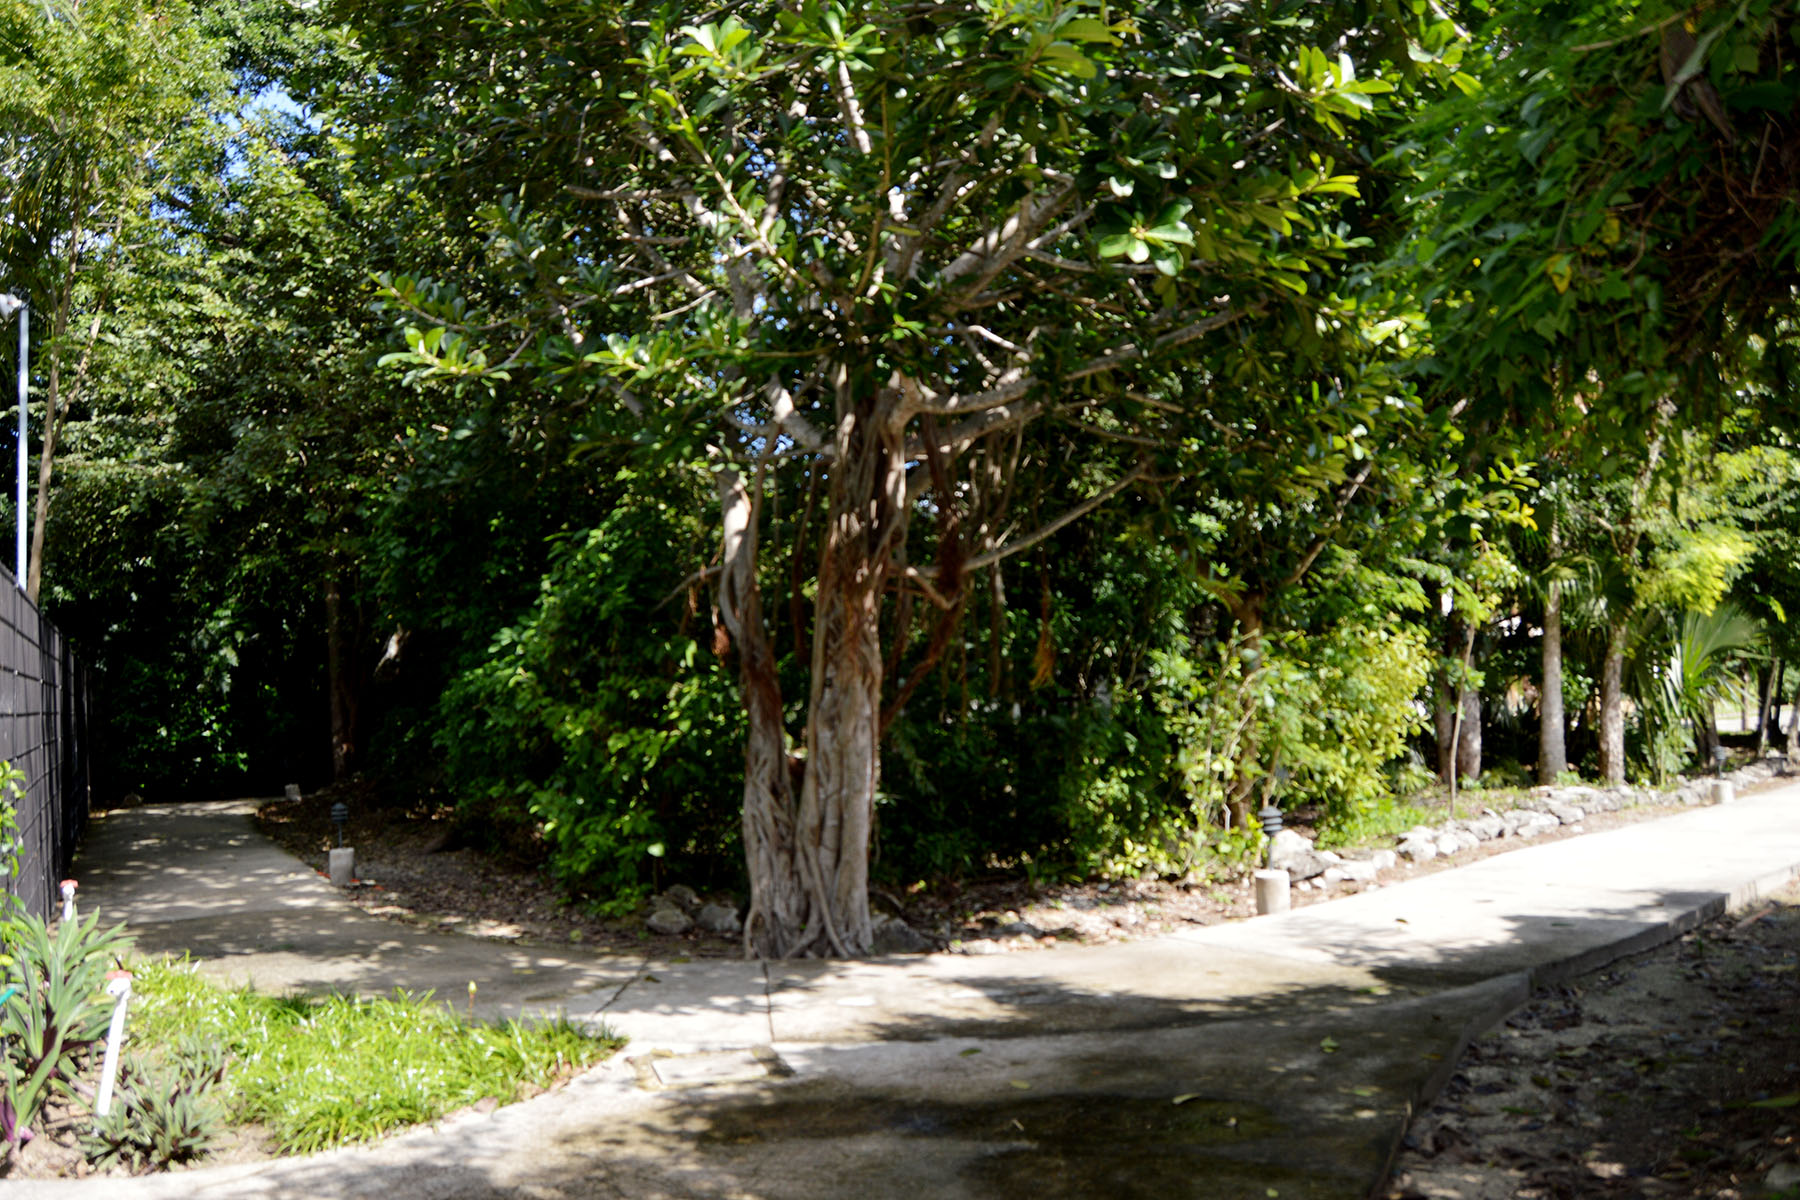 Land for Sale at 181 CLUB REAL RESIDENTIAL LOT 181 Club Real Residential Lot Retorno Copan Playa Del Carmen, Quintana Roo, 77710 Mexico